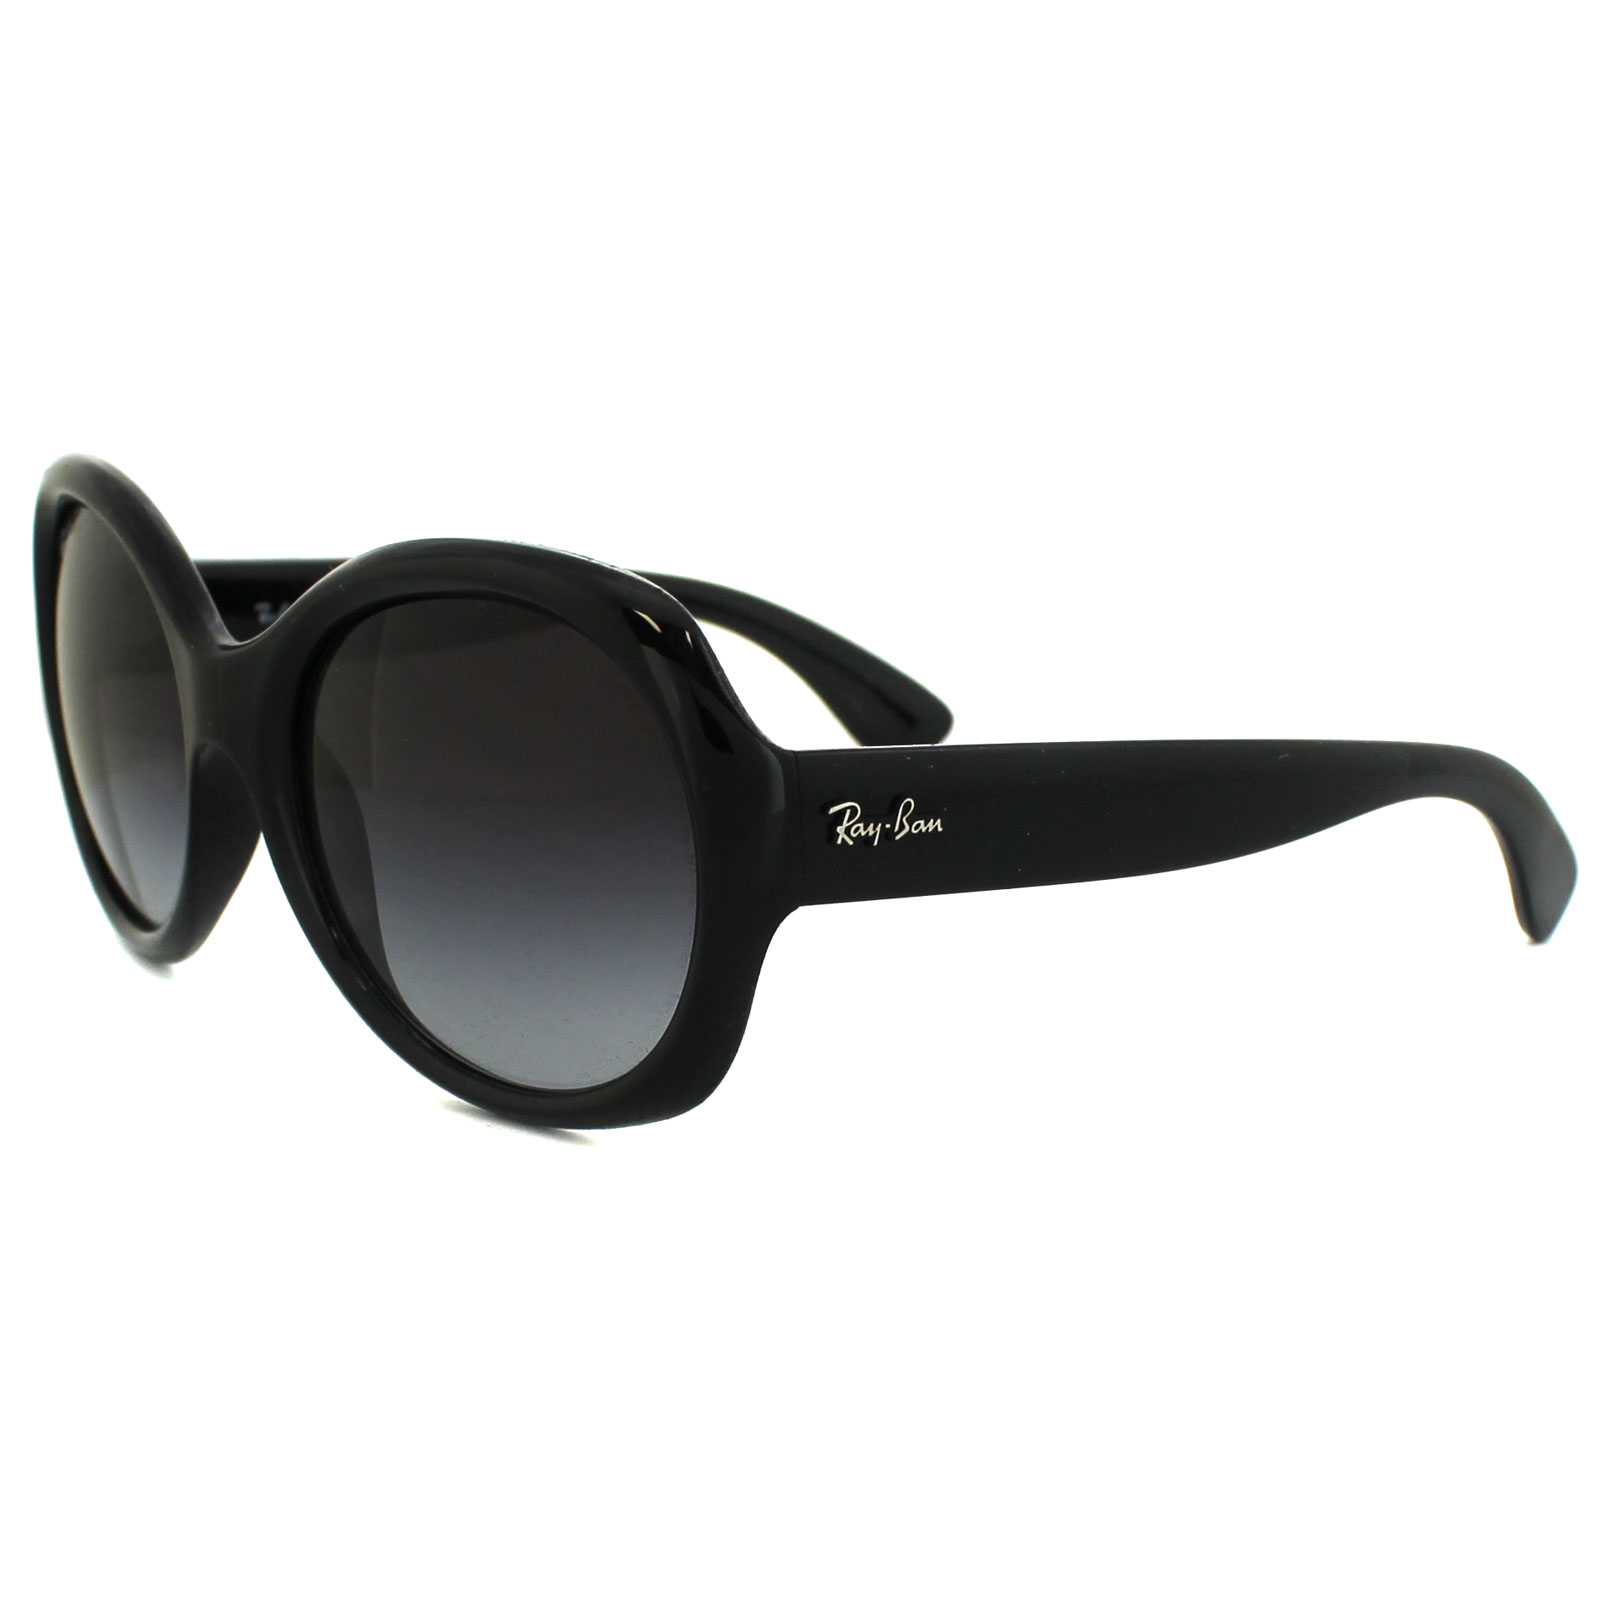 71debd5ede Cheap Ray-Ban 4191 Sunglasses - Discounted Sunglasses